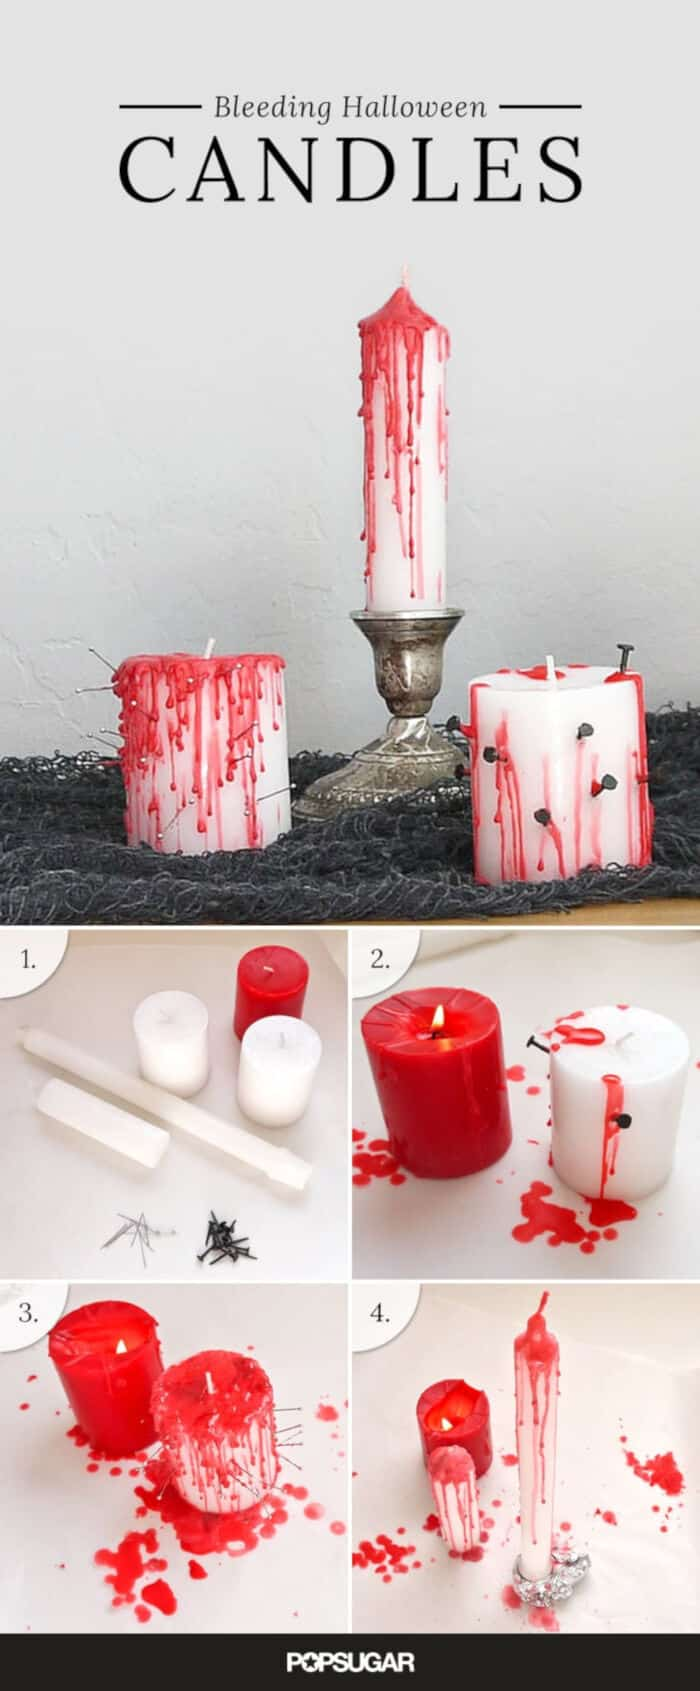 DIY Bleeding Halloween Candles by POPSUGAR